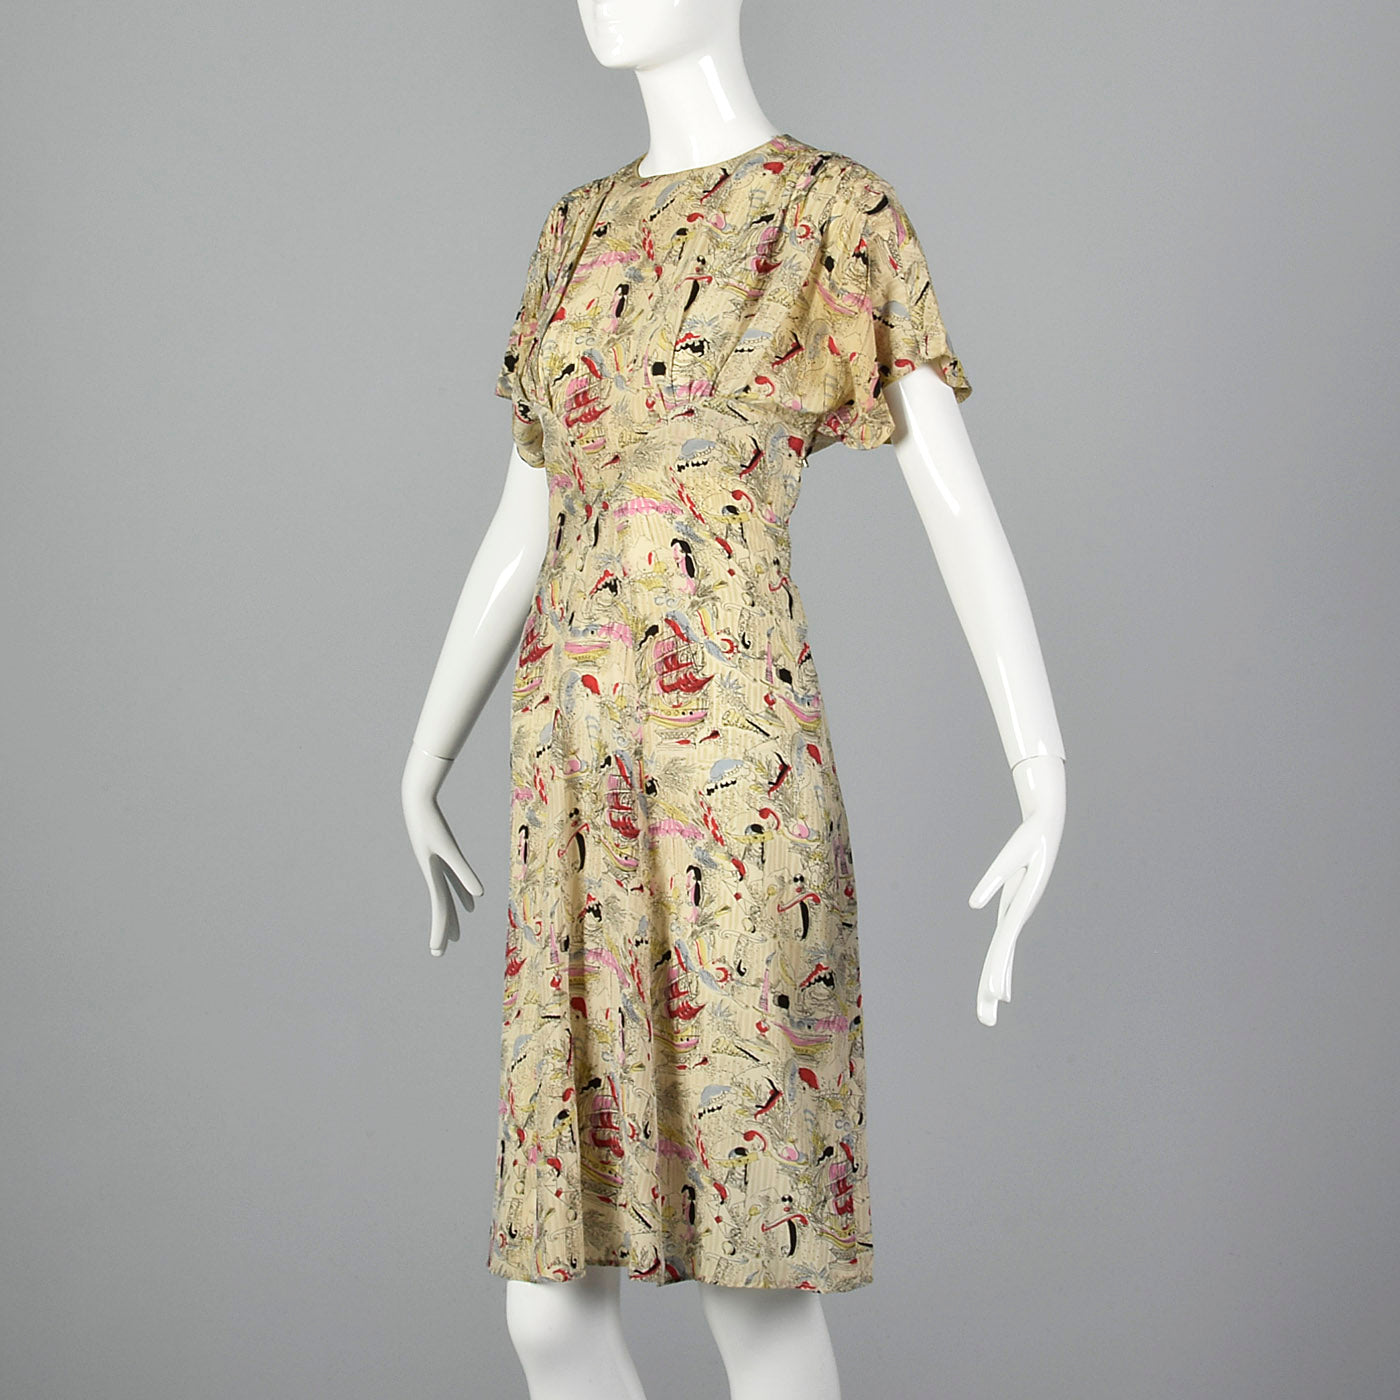 1940s Novelty Print Silk Dress with Neck Tie